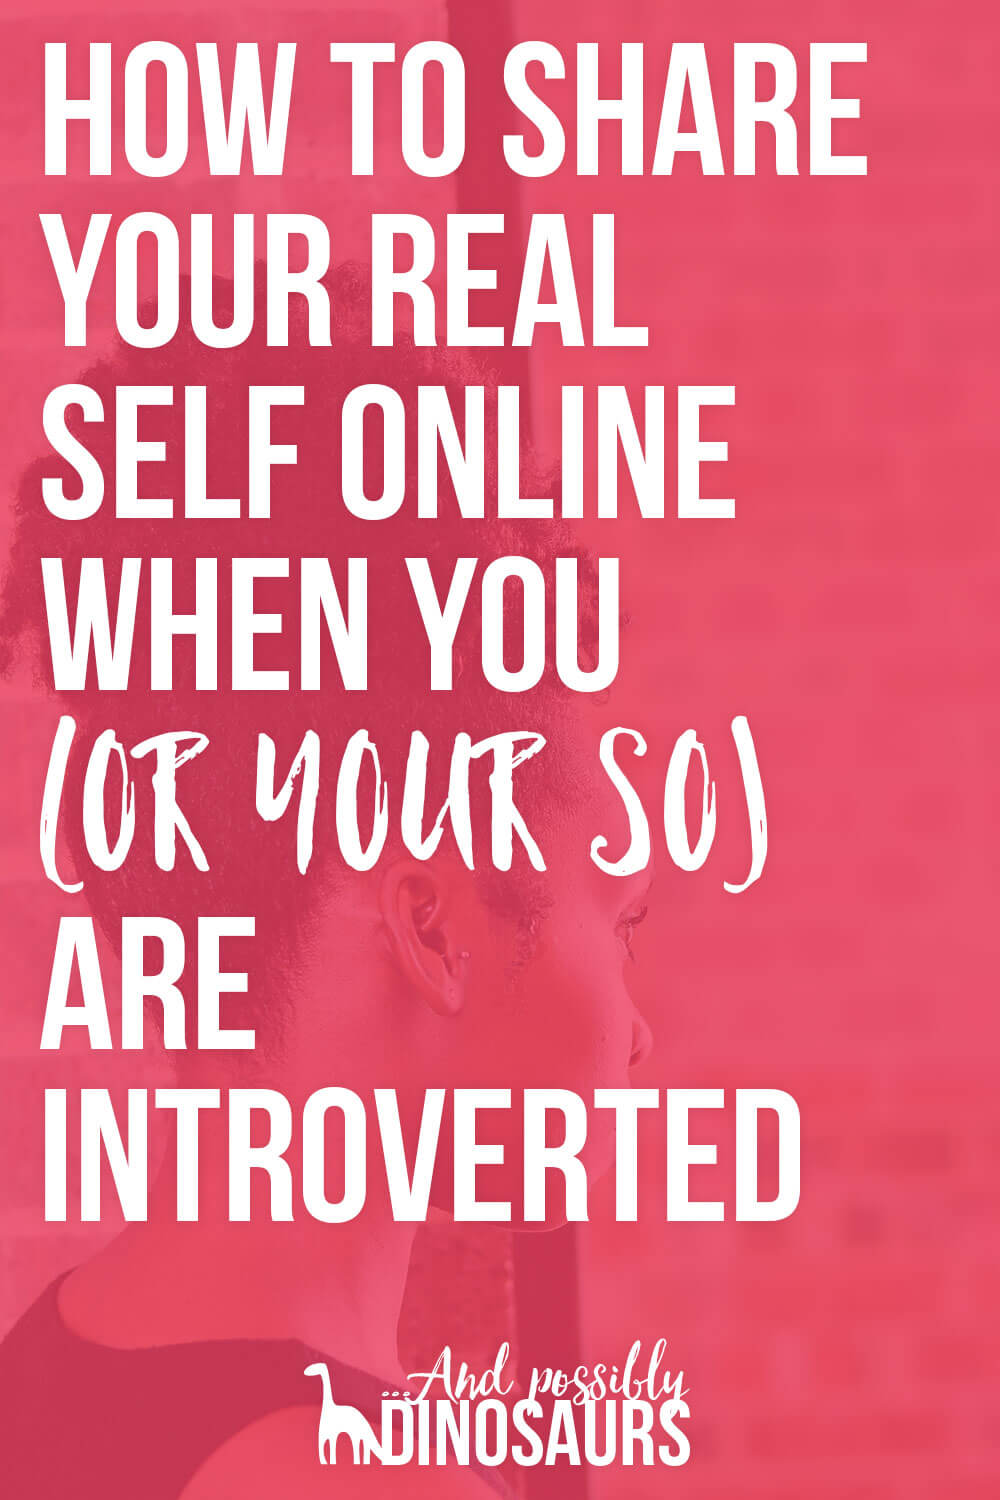 Bloggers have to have a distinct personality to be successful. So how do you share your real self online when you (or your SO) are introverted?